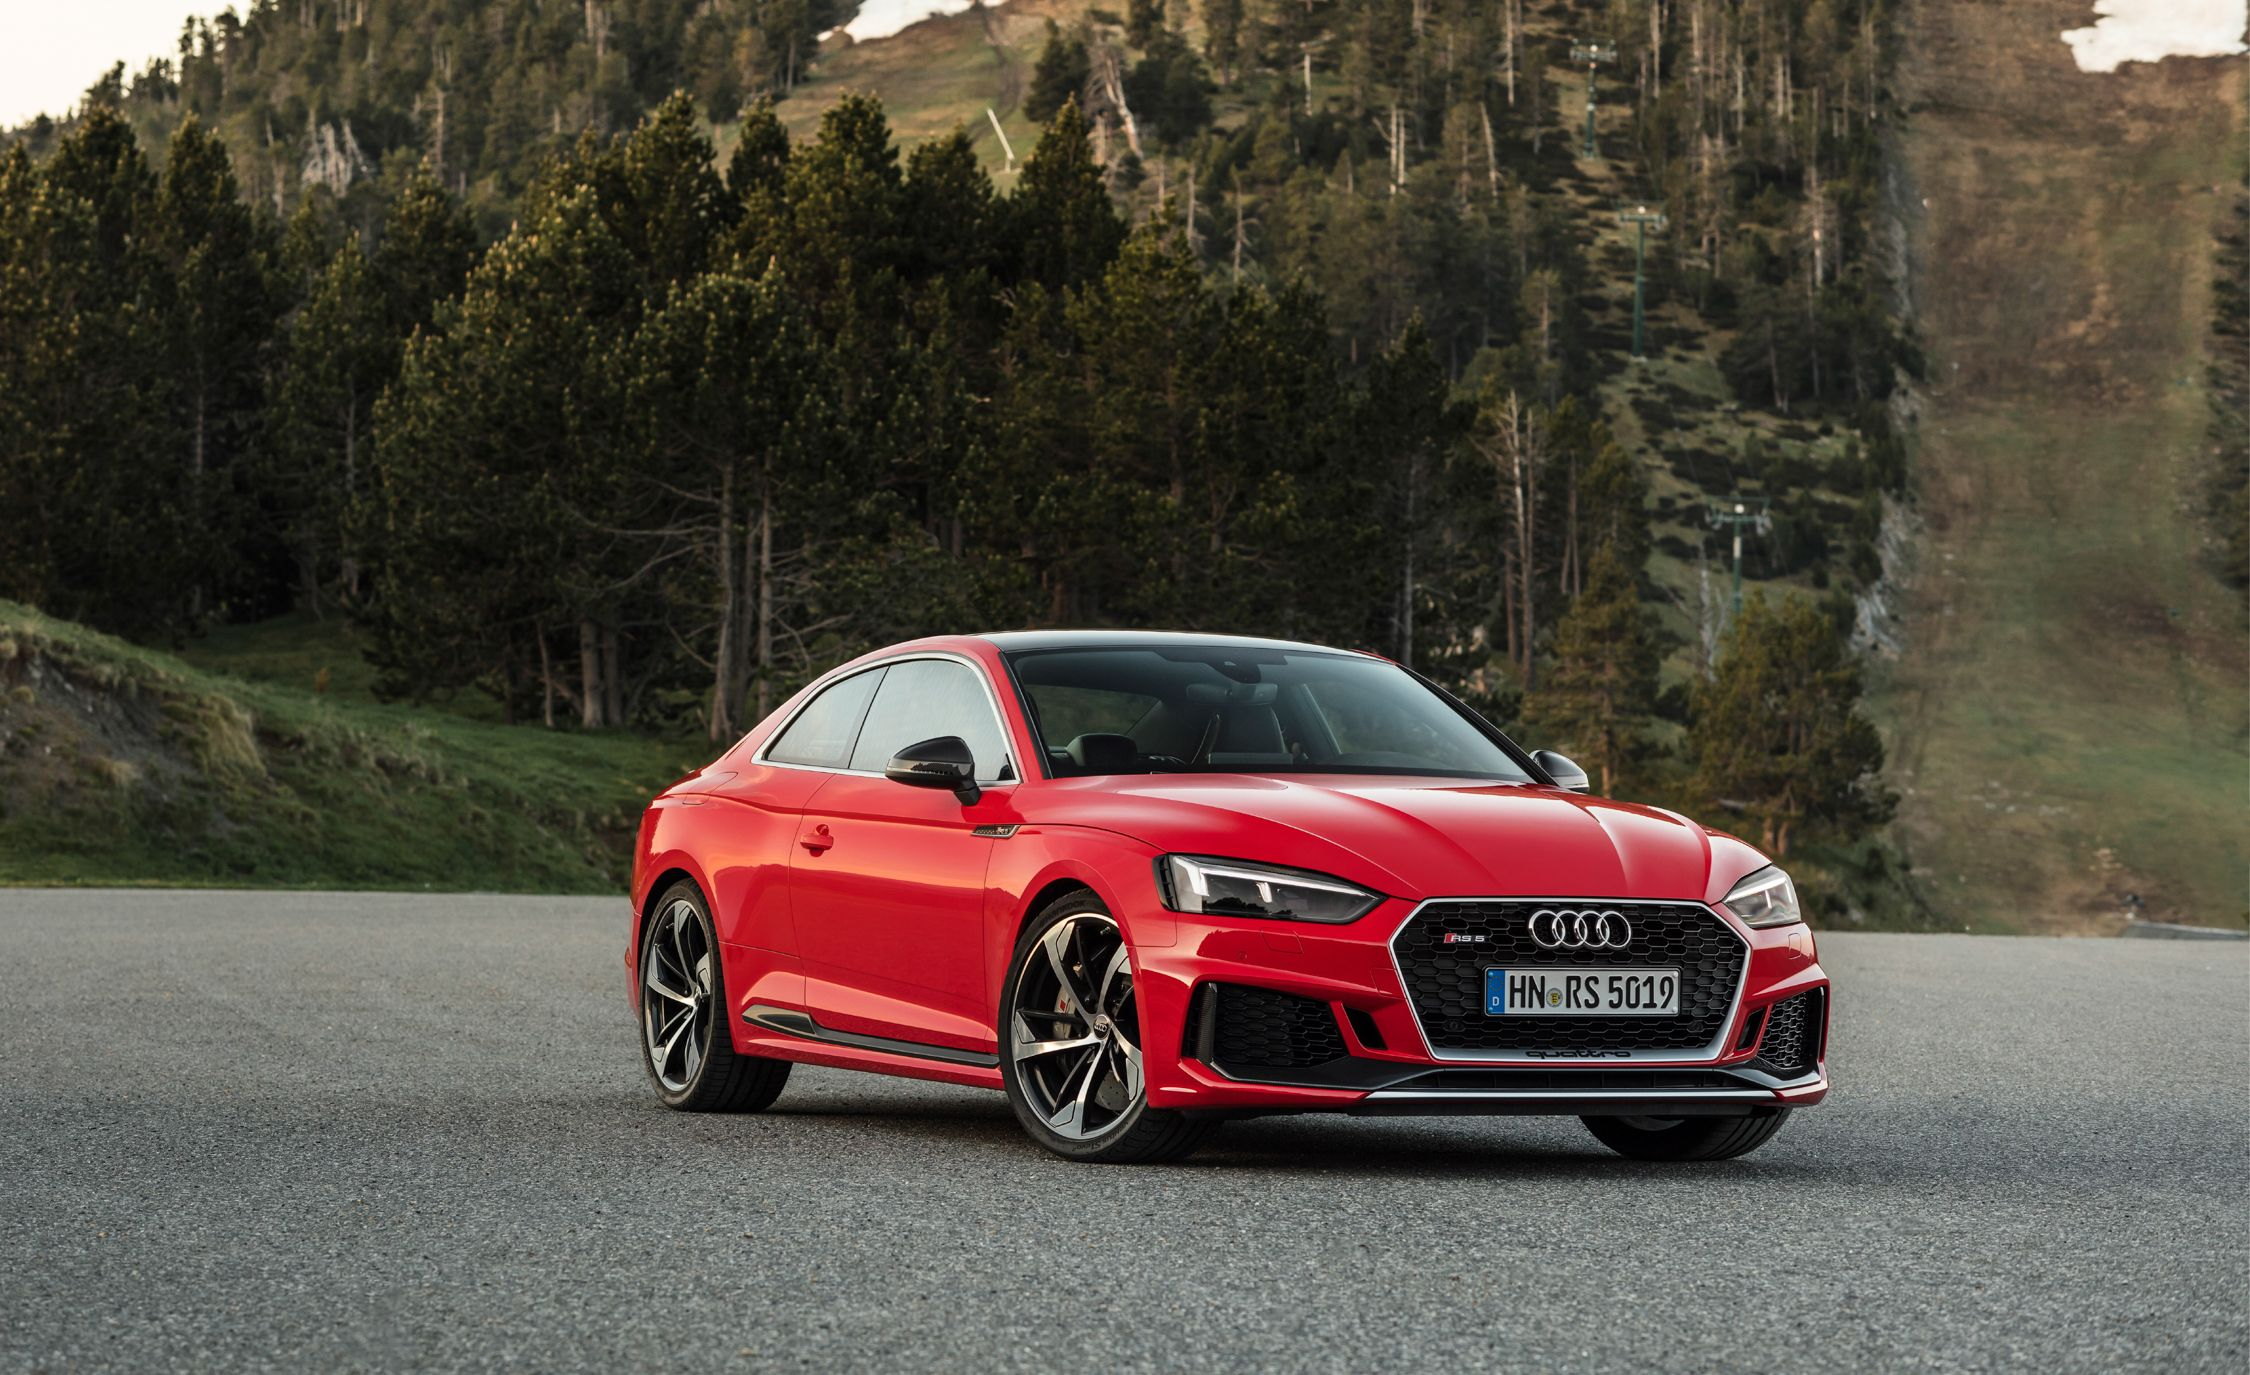 Audi RS5 Reviews Audi RS5 Price s and Specs